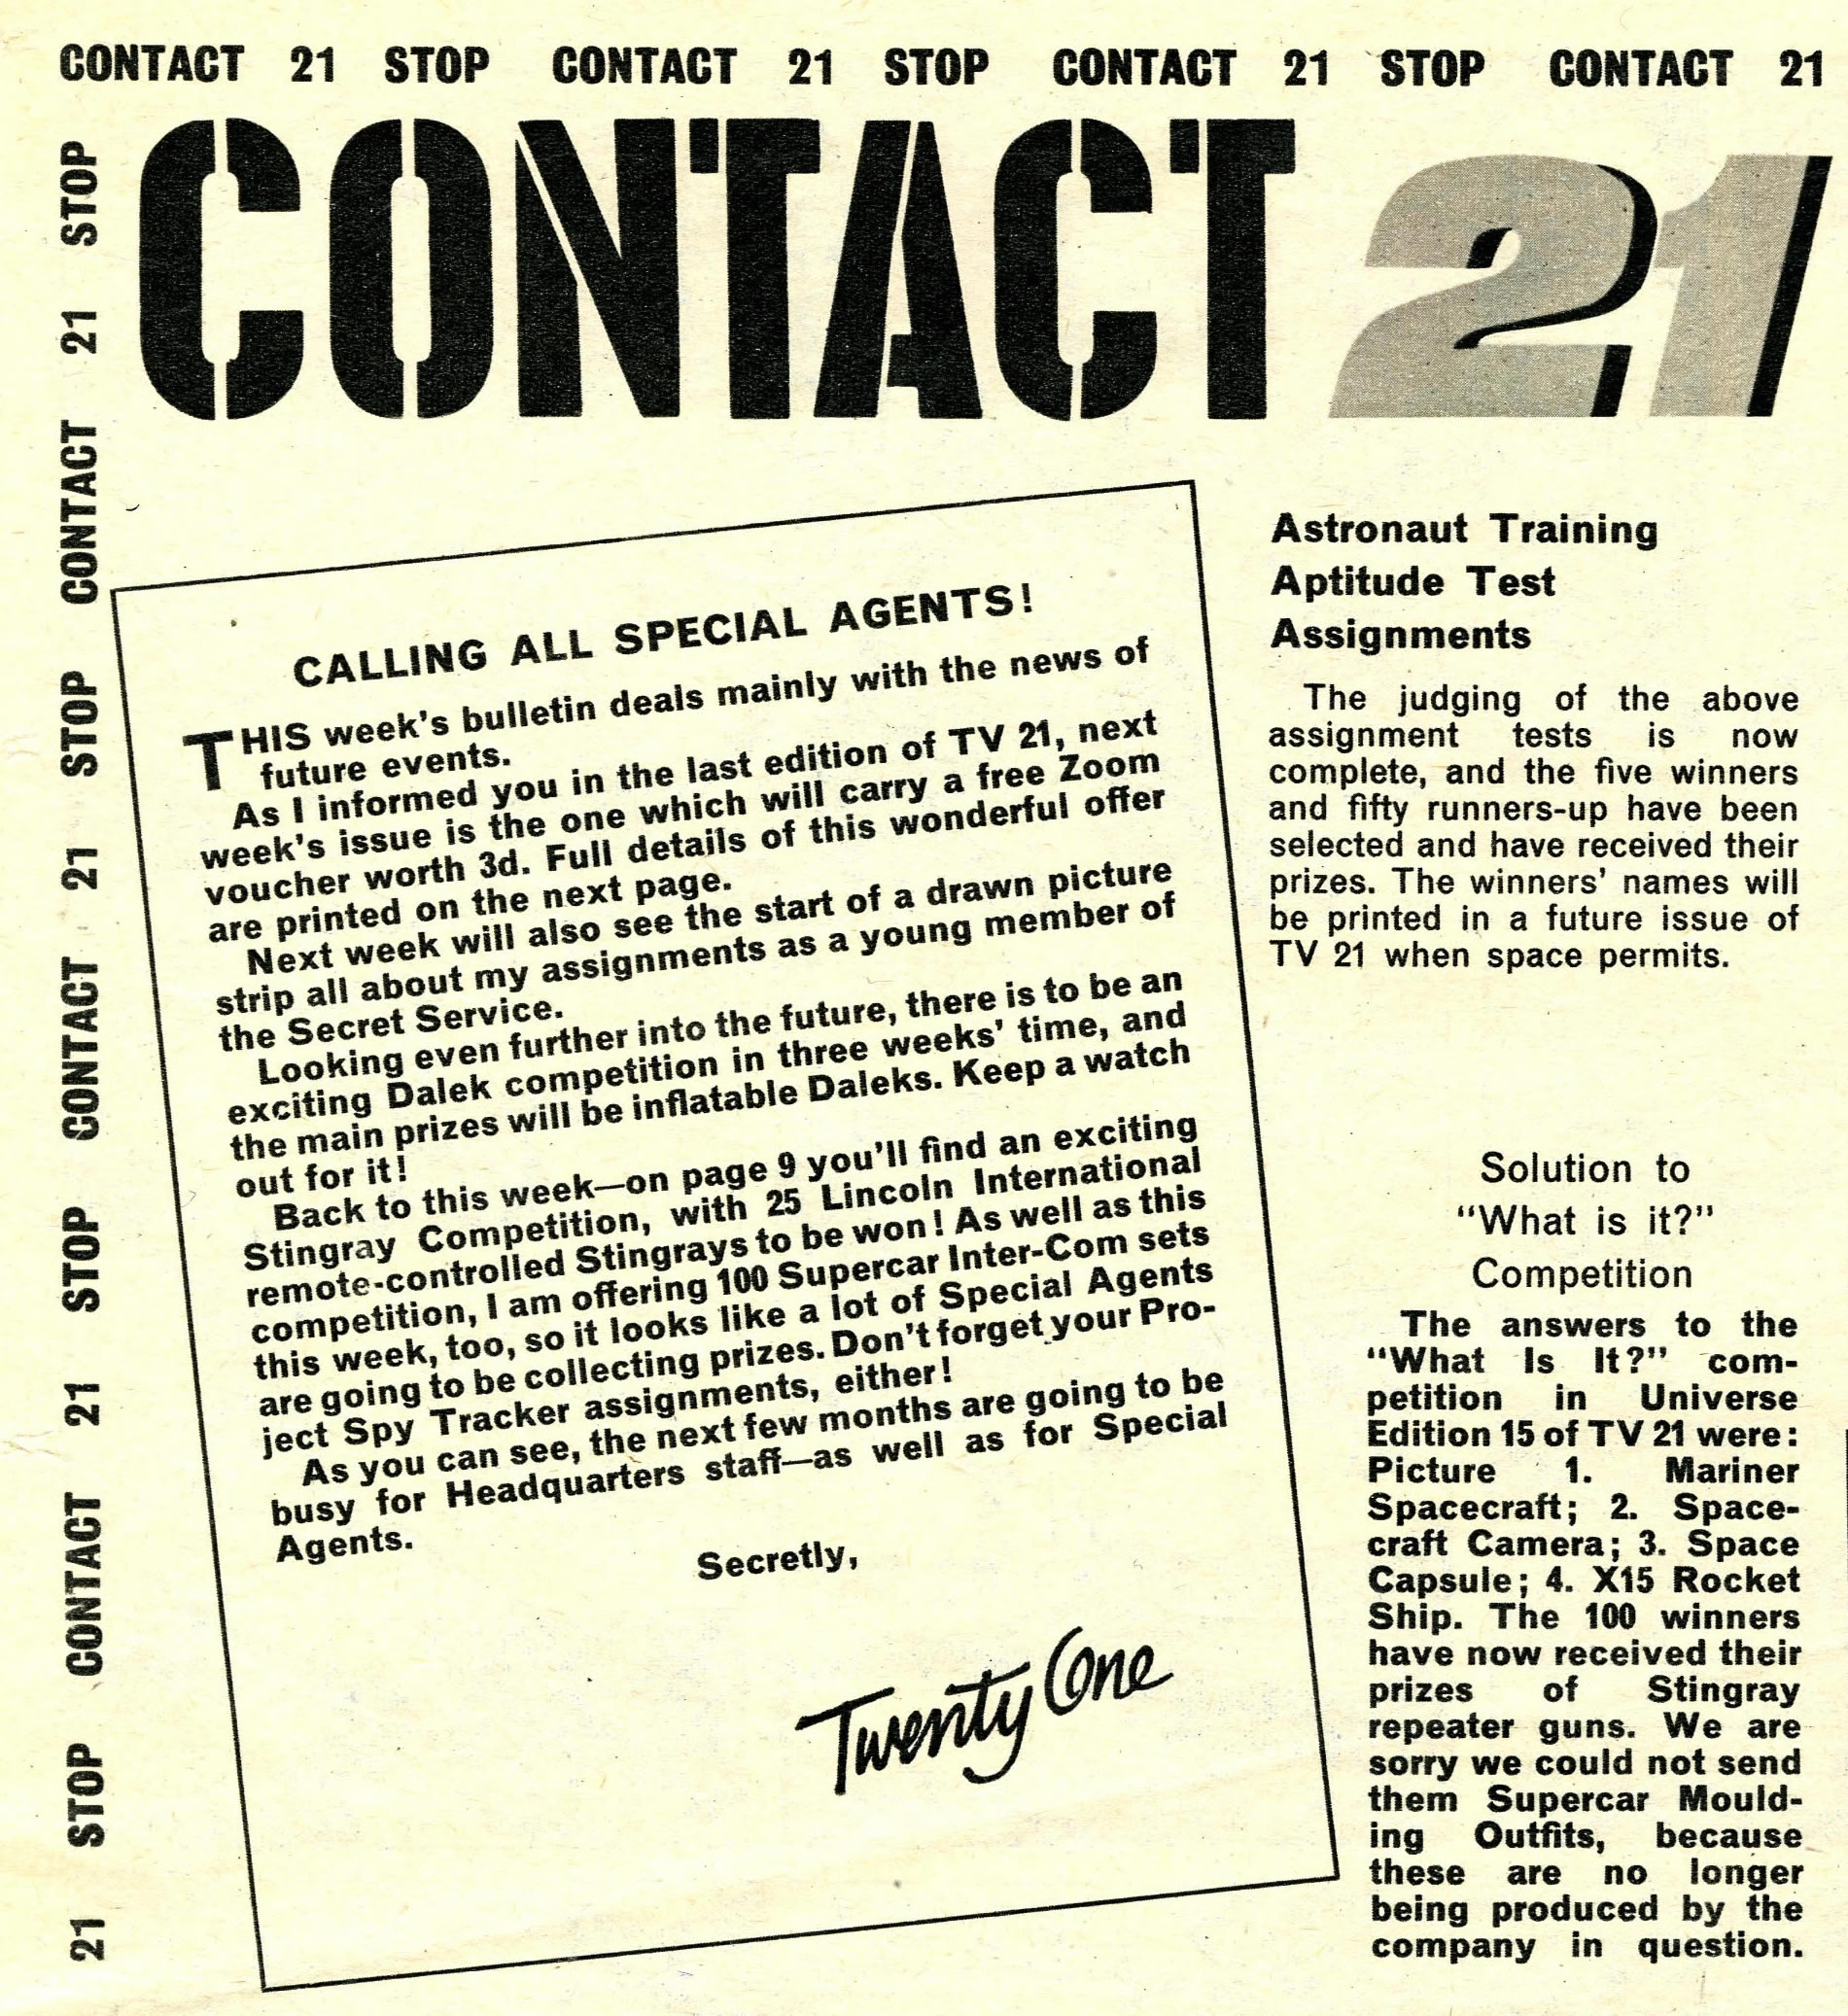 TV Century 21 #21 editorial referencing upcoming Dalek competitions